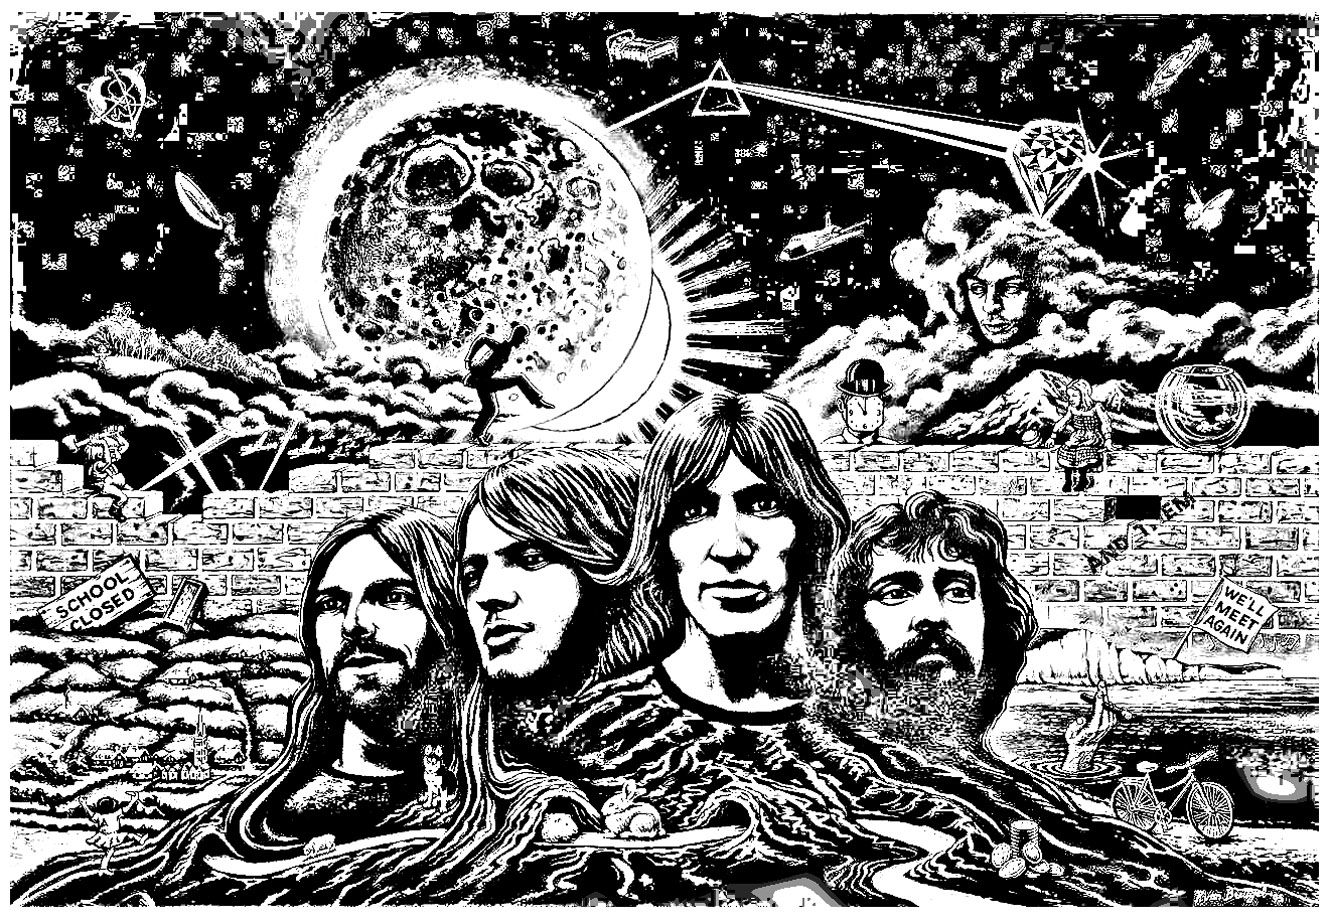 Big Abstract Coloring Pages : To print this free coloring page «coloring pink floyd psychedelism